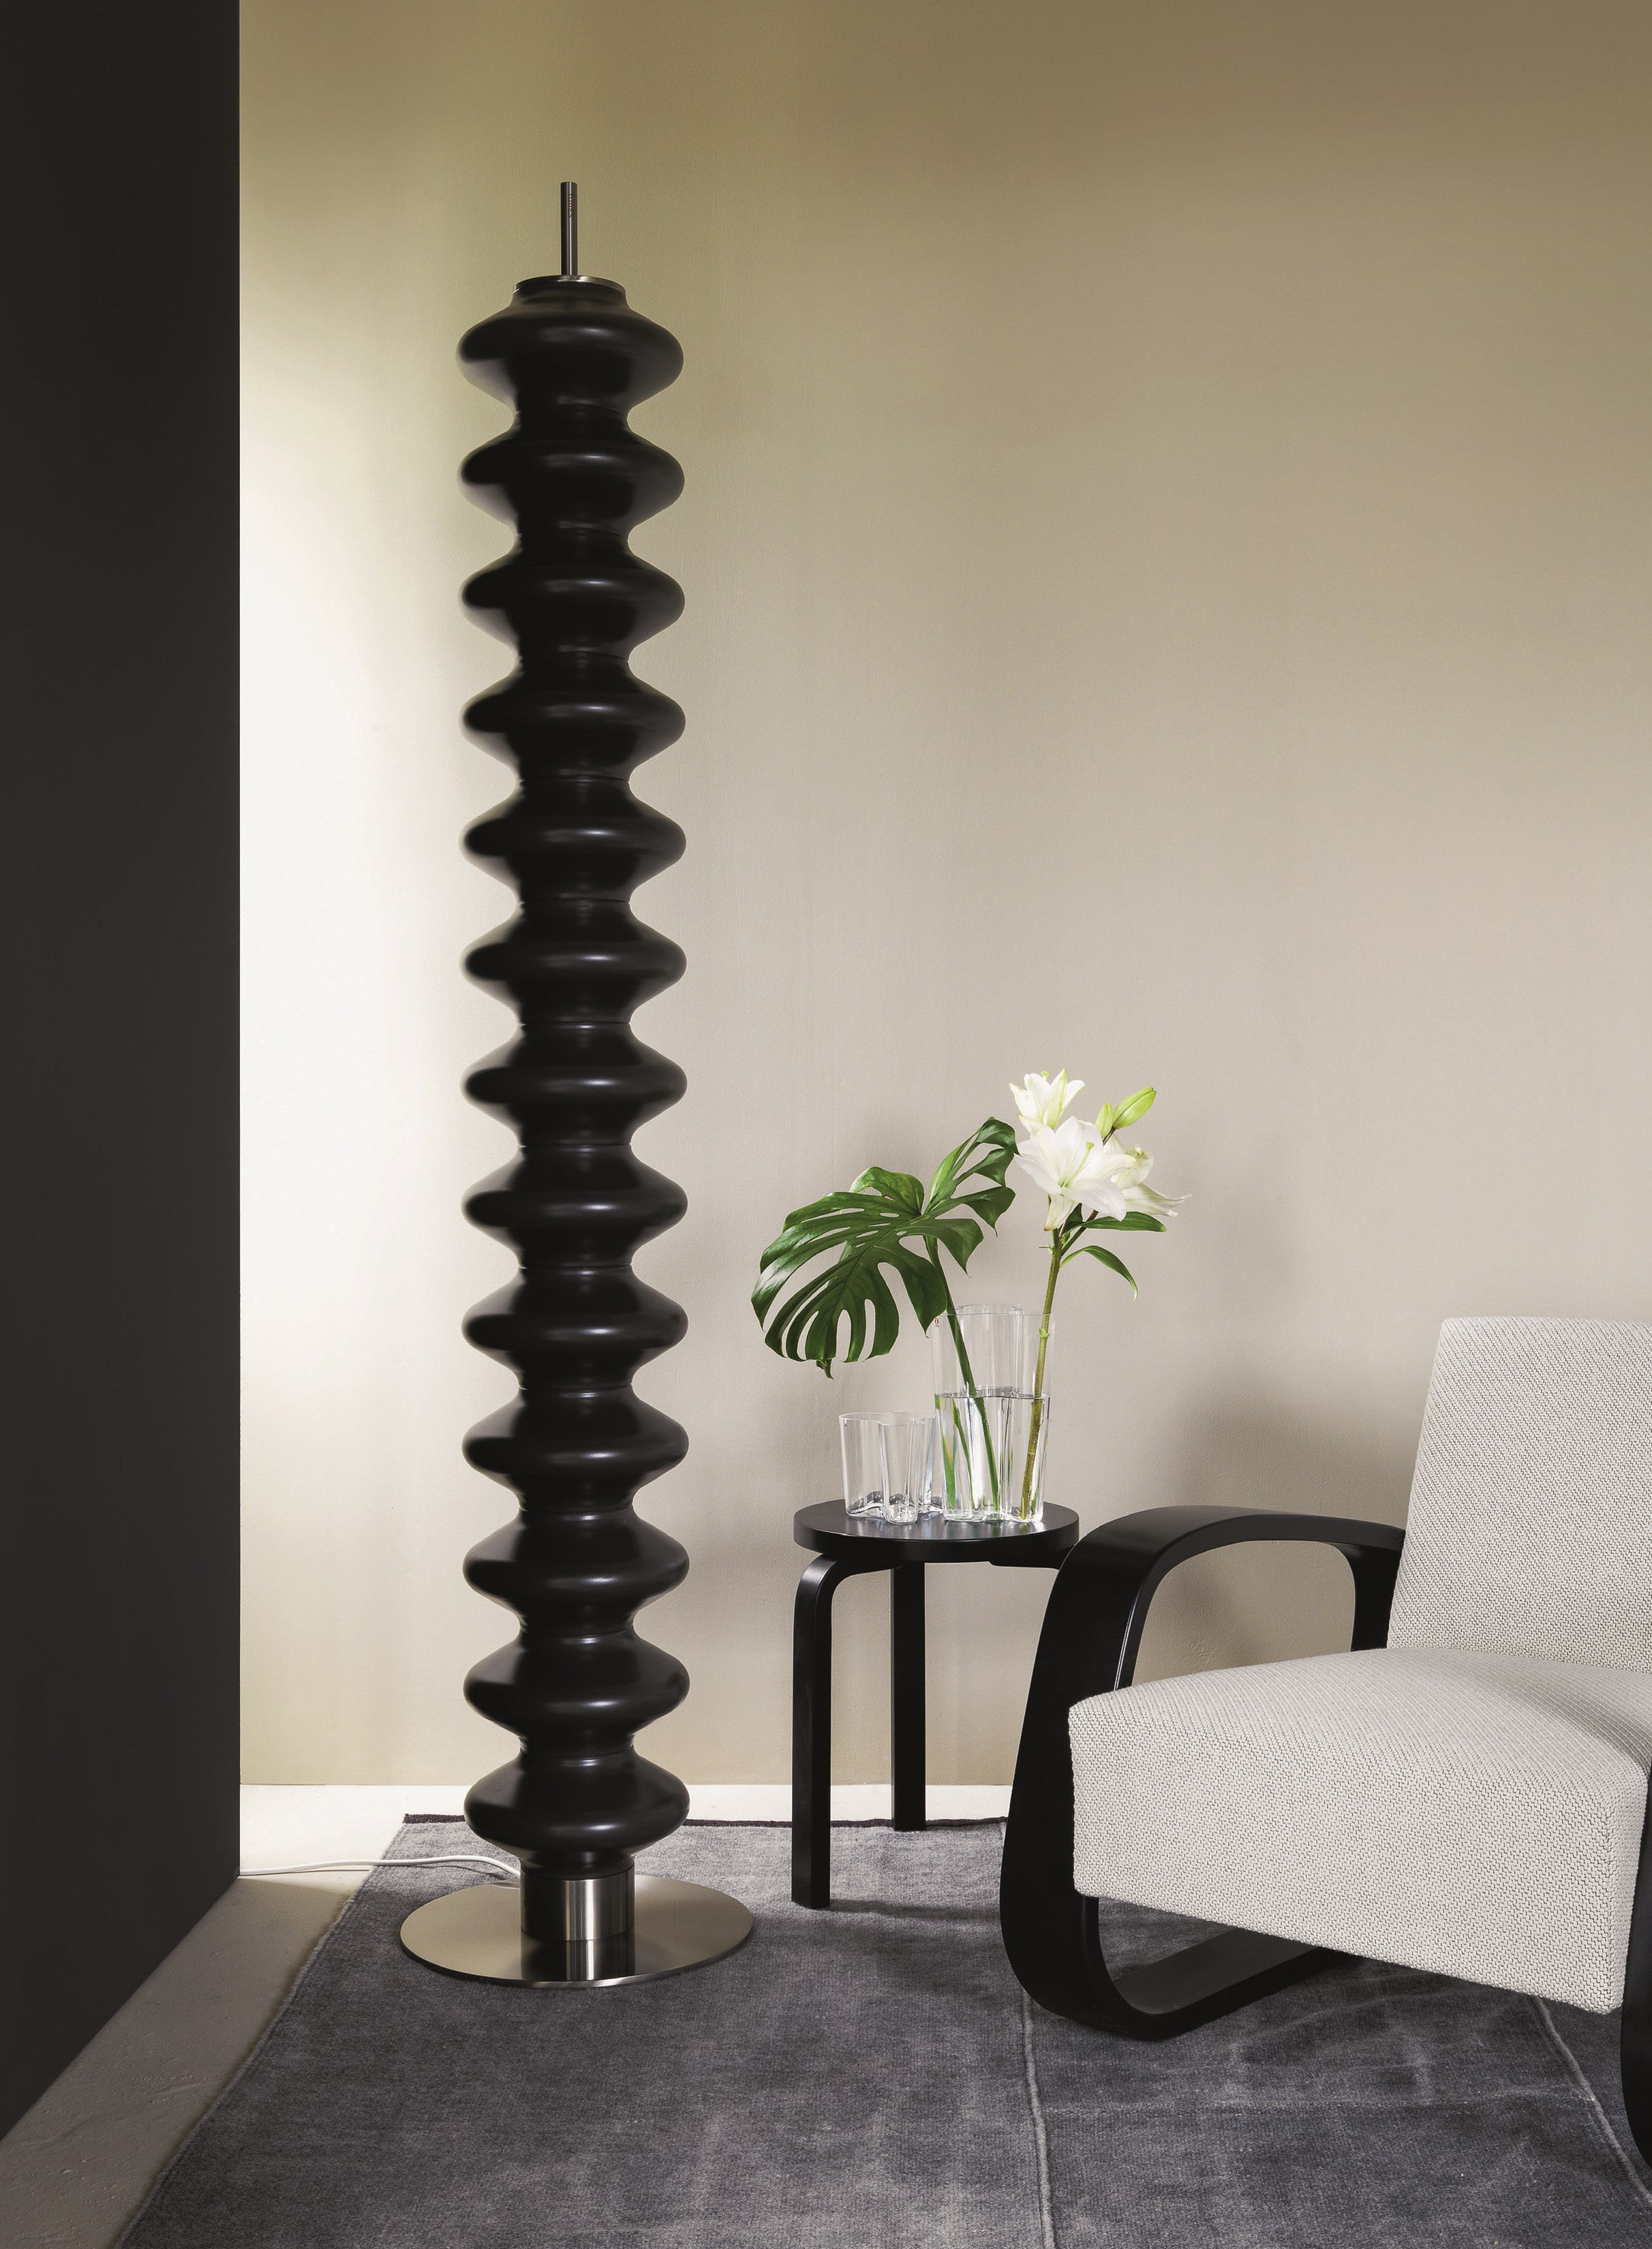 Milano floor standing decorative radiator by tubes for Design milano